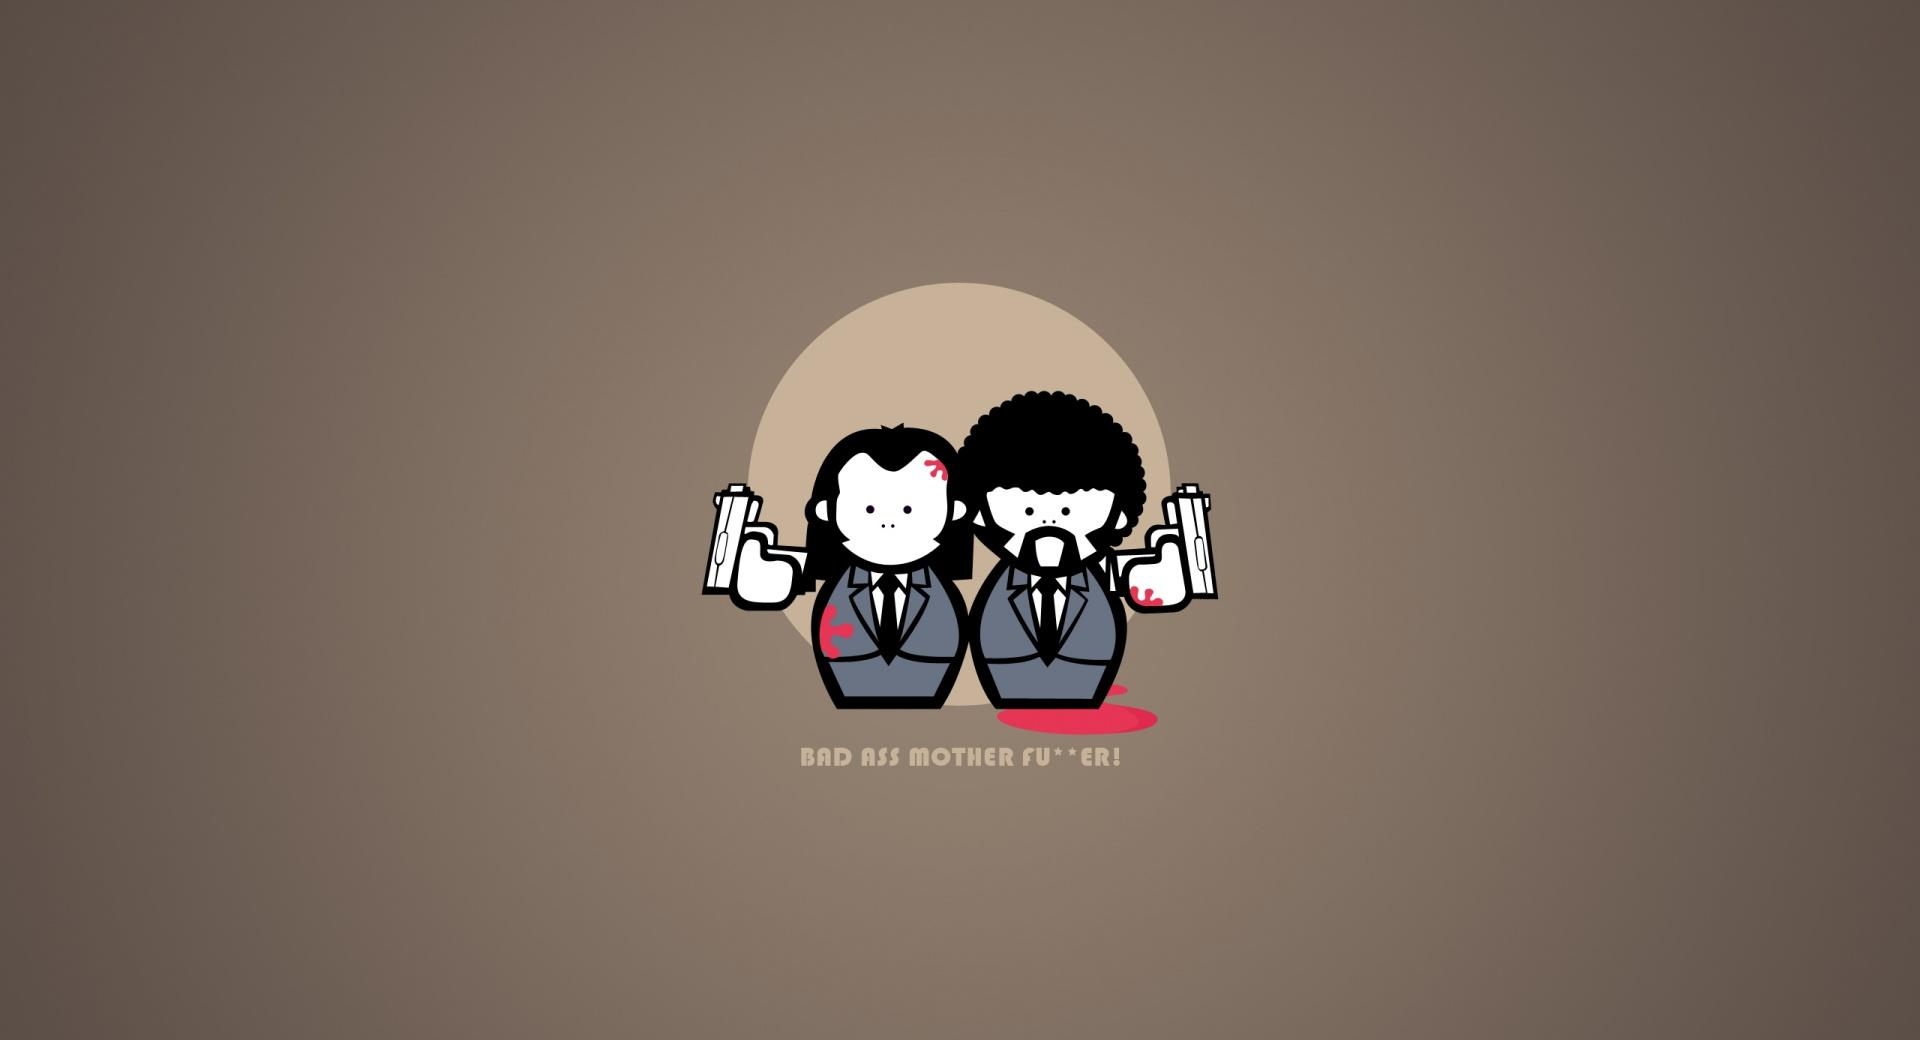 Pulp Fiction Cartoon at 1600 x 1200 size wallpapers HD quality